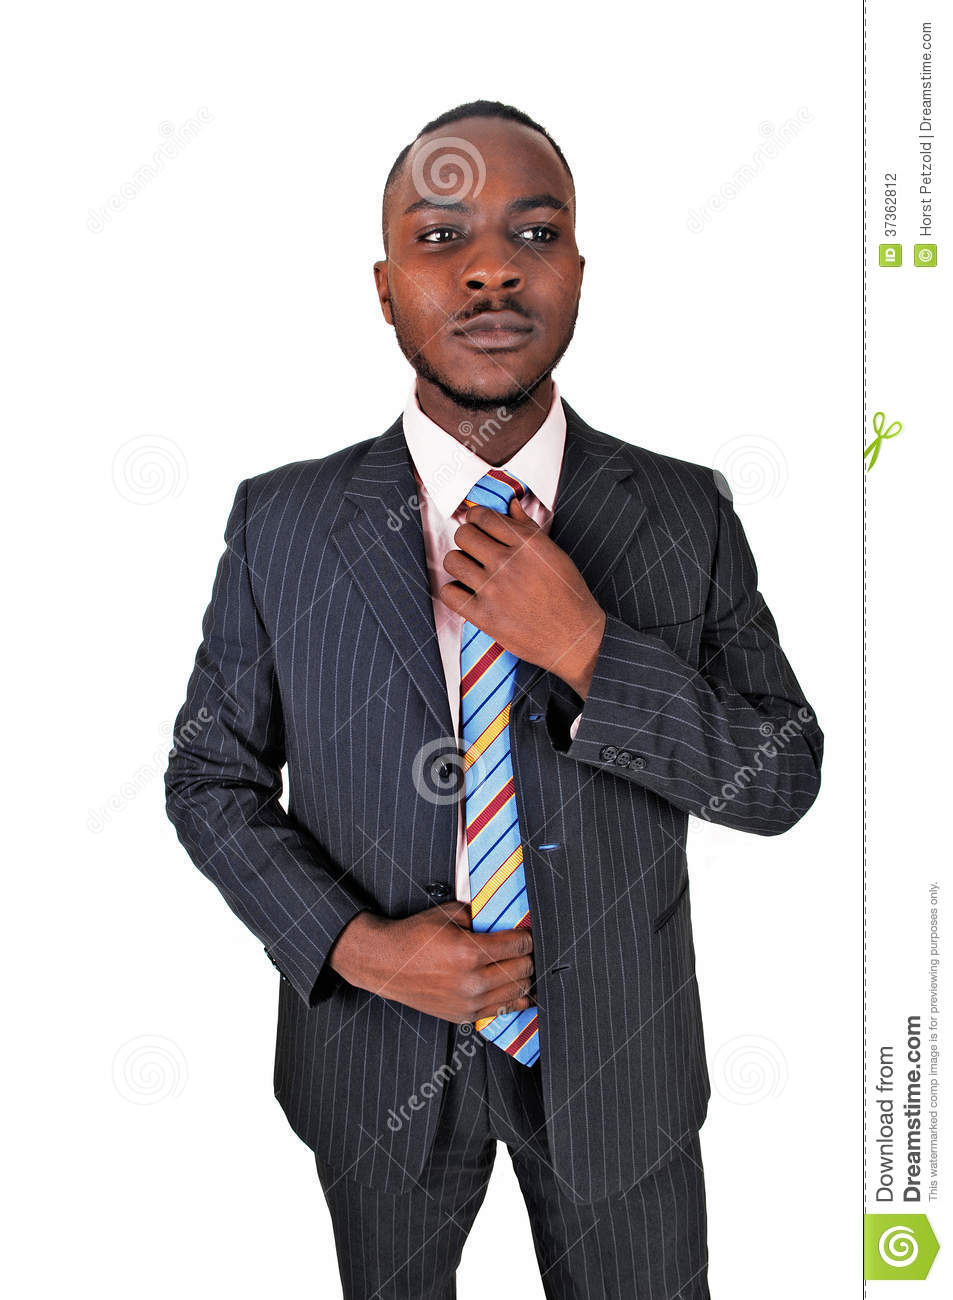 Black Man In Business Suit. Stock Photo - Image: 37362812